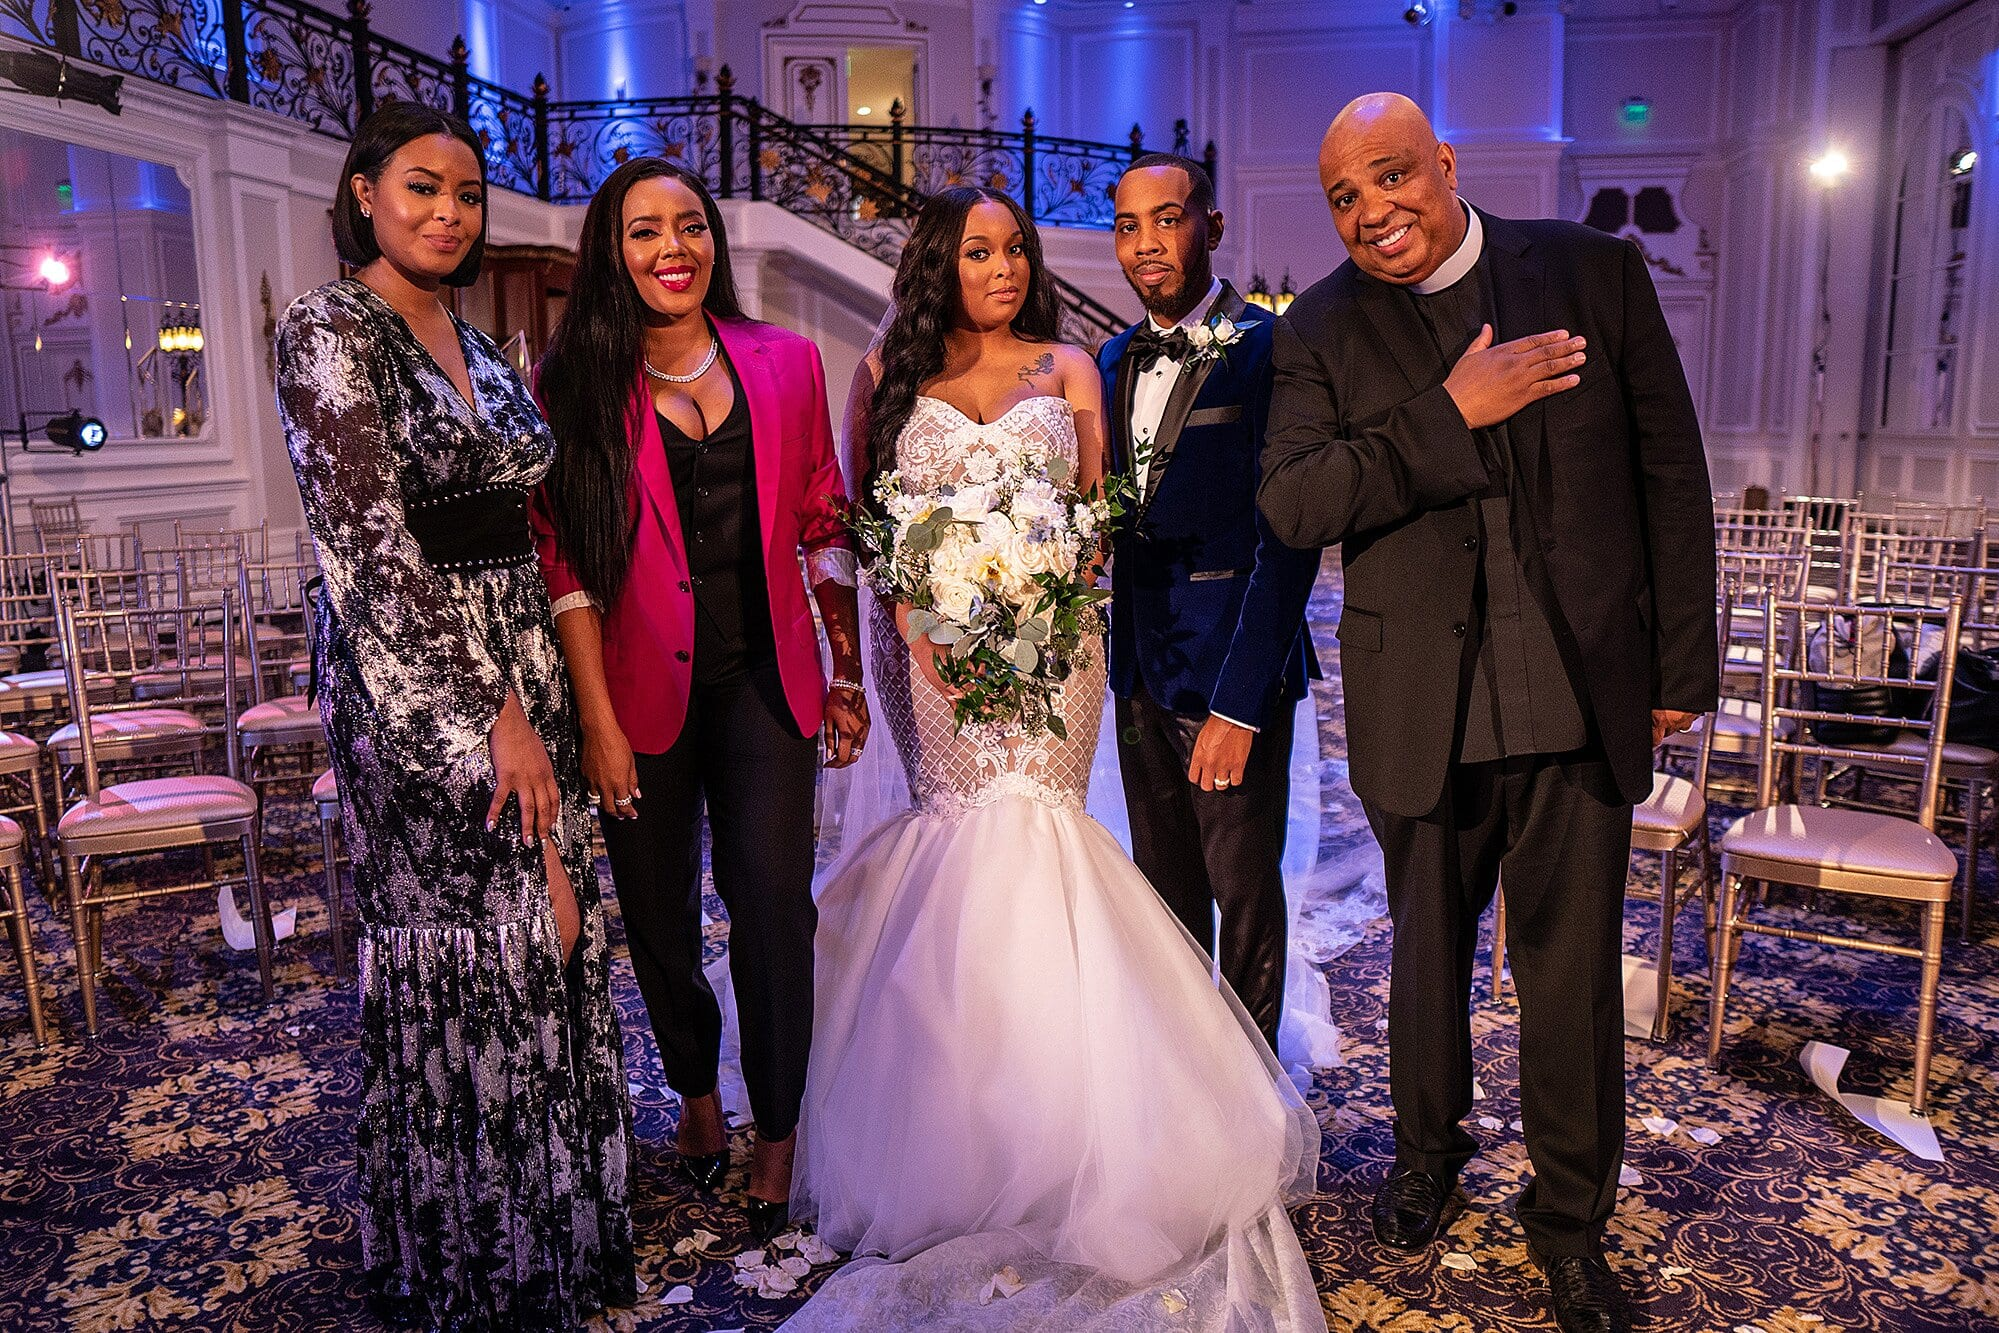 Vanessa Simmons Talks Mom 'Positivity' amid Pandemic While Angela Talks Being a Single Parent